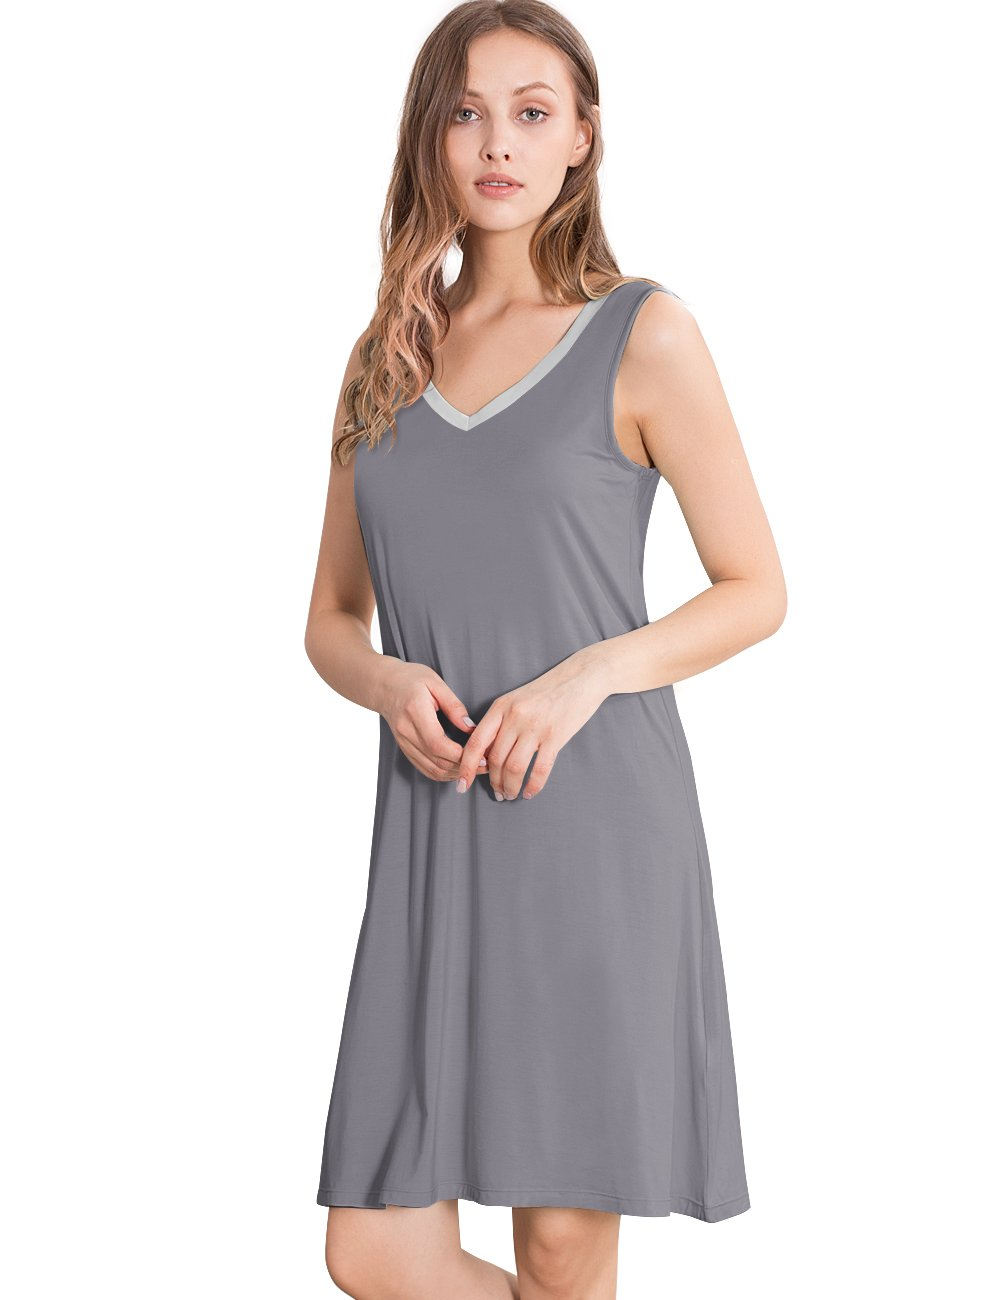 GYS Womens Bamboo Viscose Sleeveless V Neck Nightgown